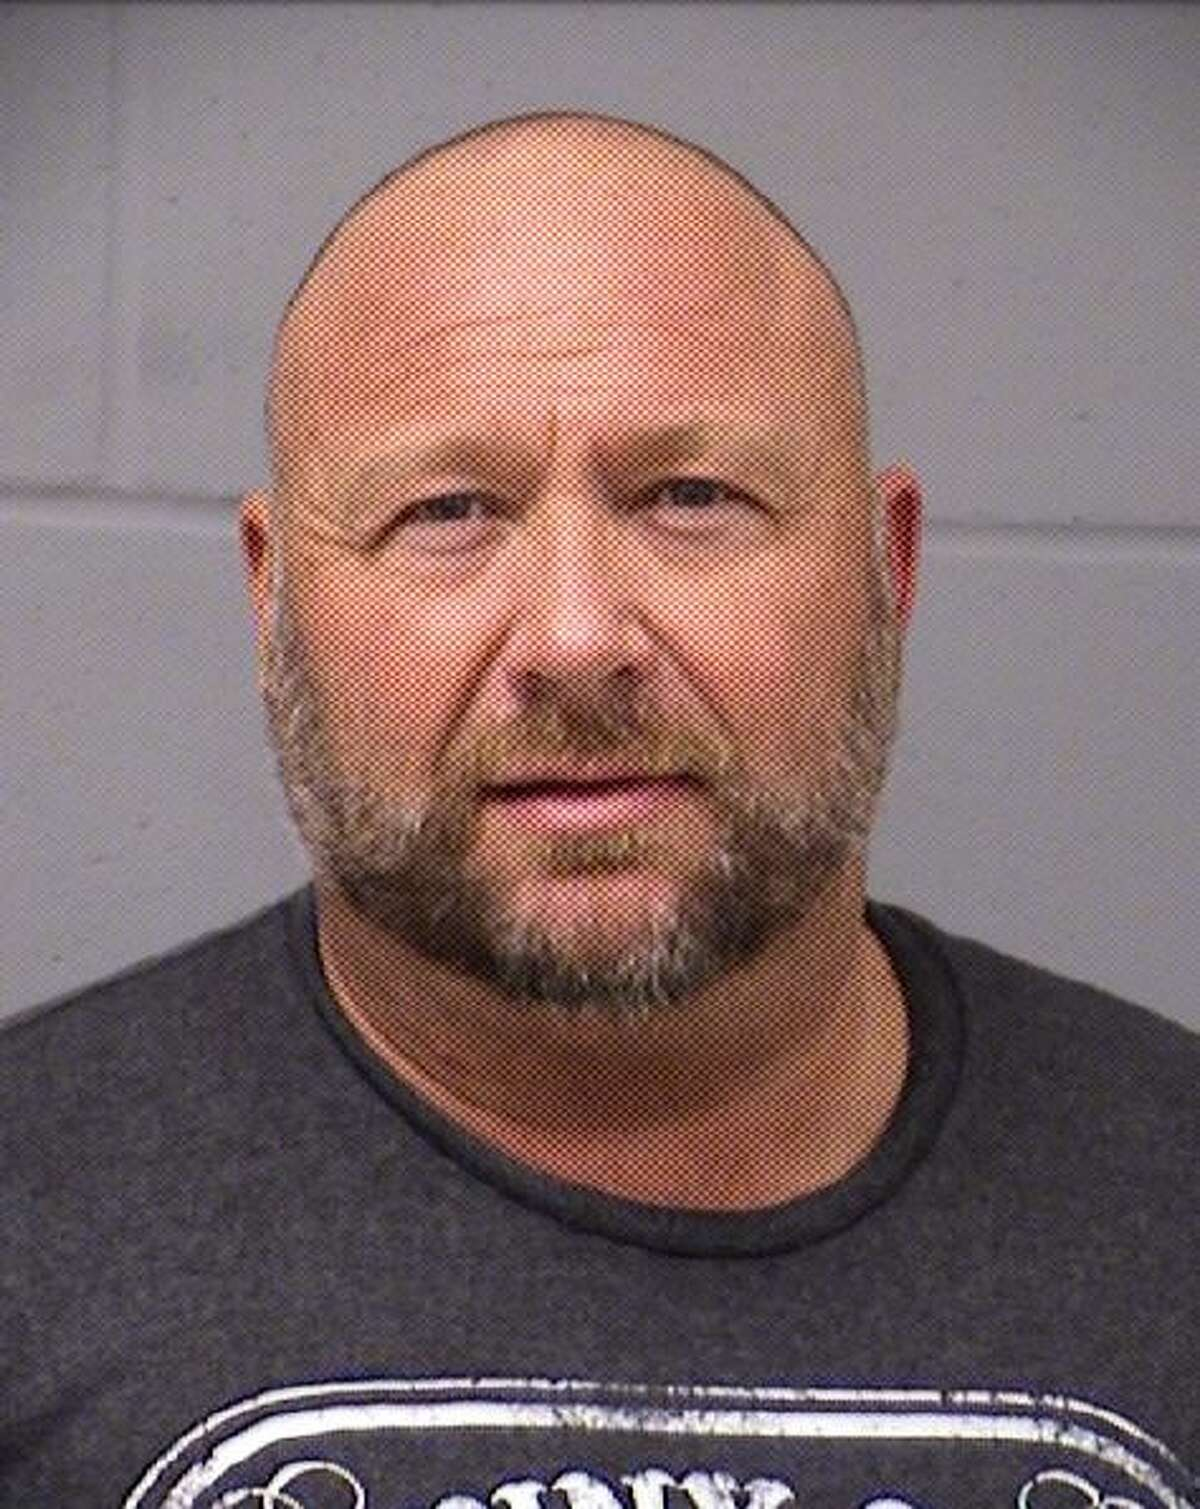 Controversial conspiracy theorist Alex Jones was arrested on a charge of driving while intoxicated in the Austin area early Tuesday, according to the Travis County Sheriff's Office.